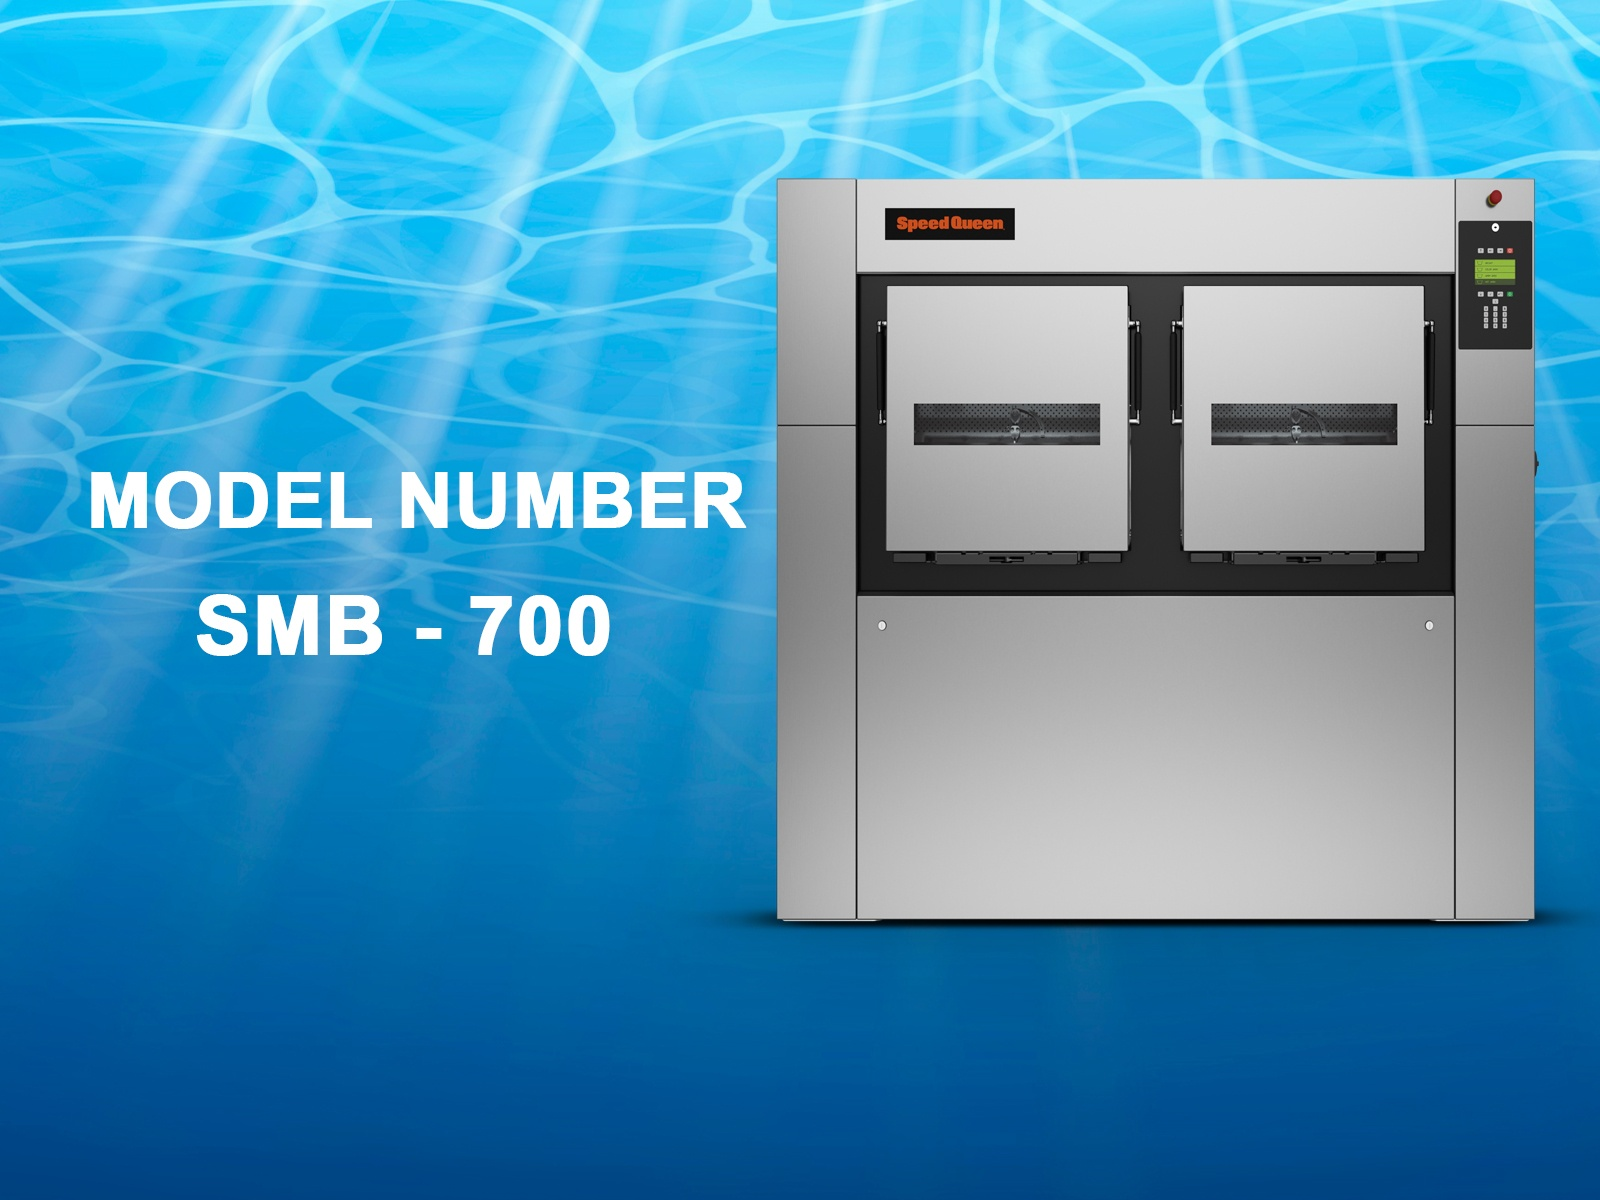 BARRIER WASHER SMB - 700